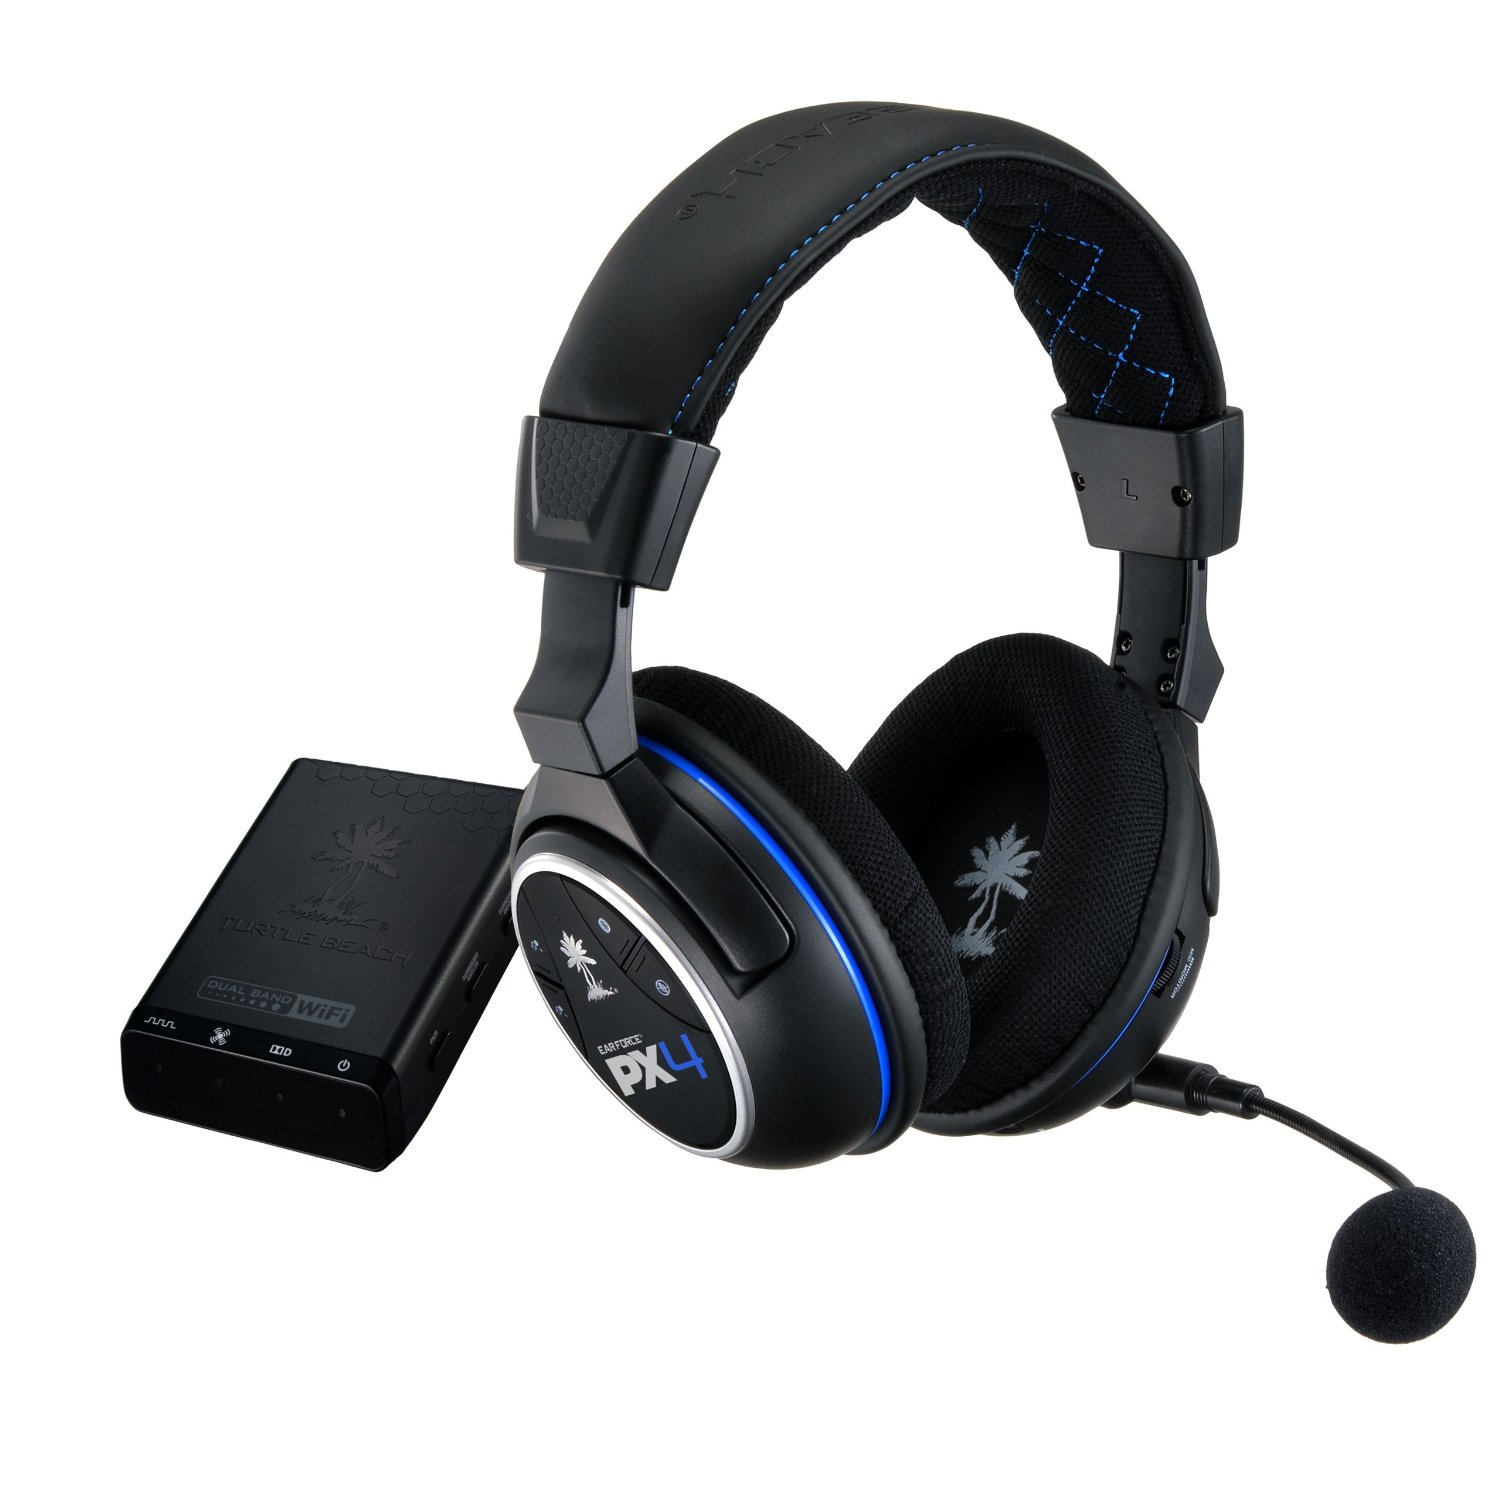 TheGamersRoom » Turtle Beach PX4 Wireless Headset (PS4) Review